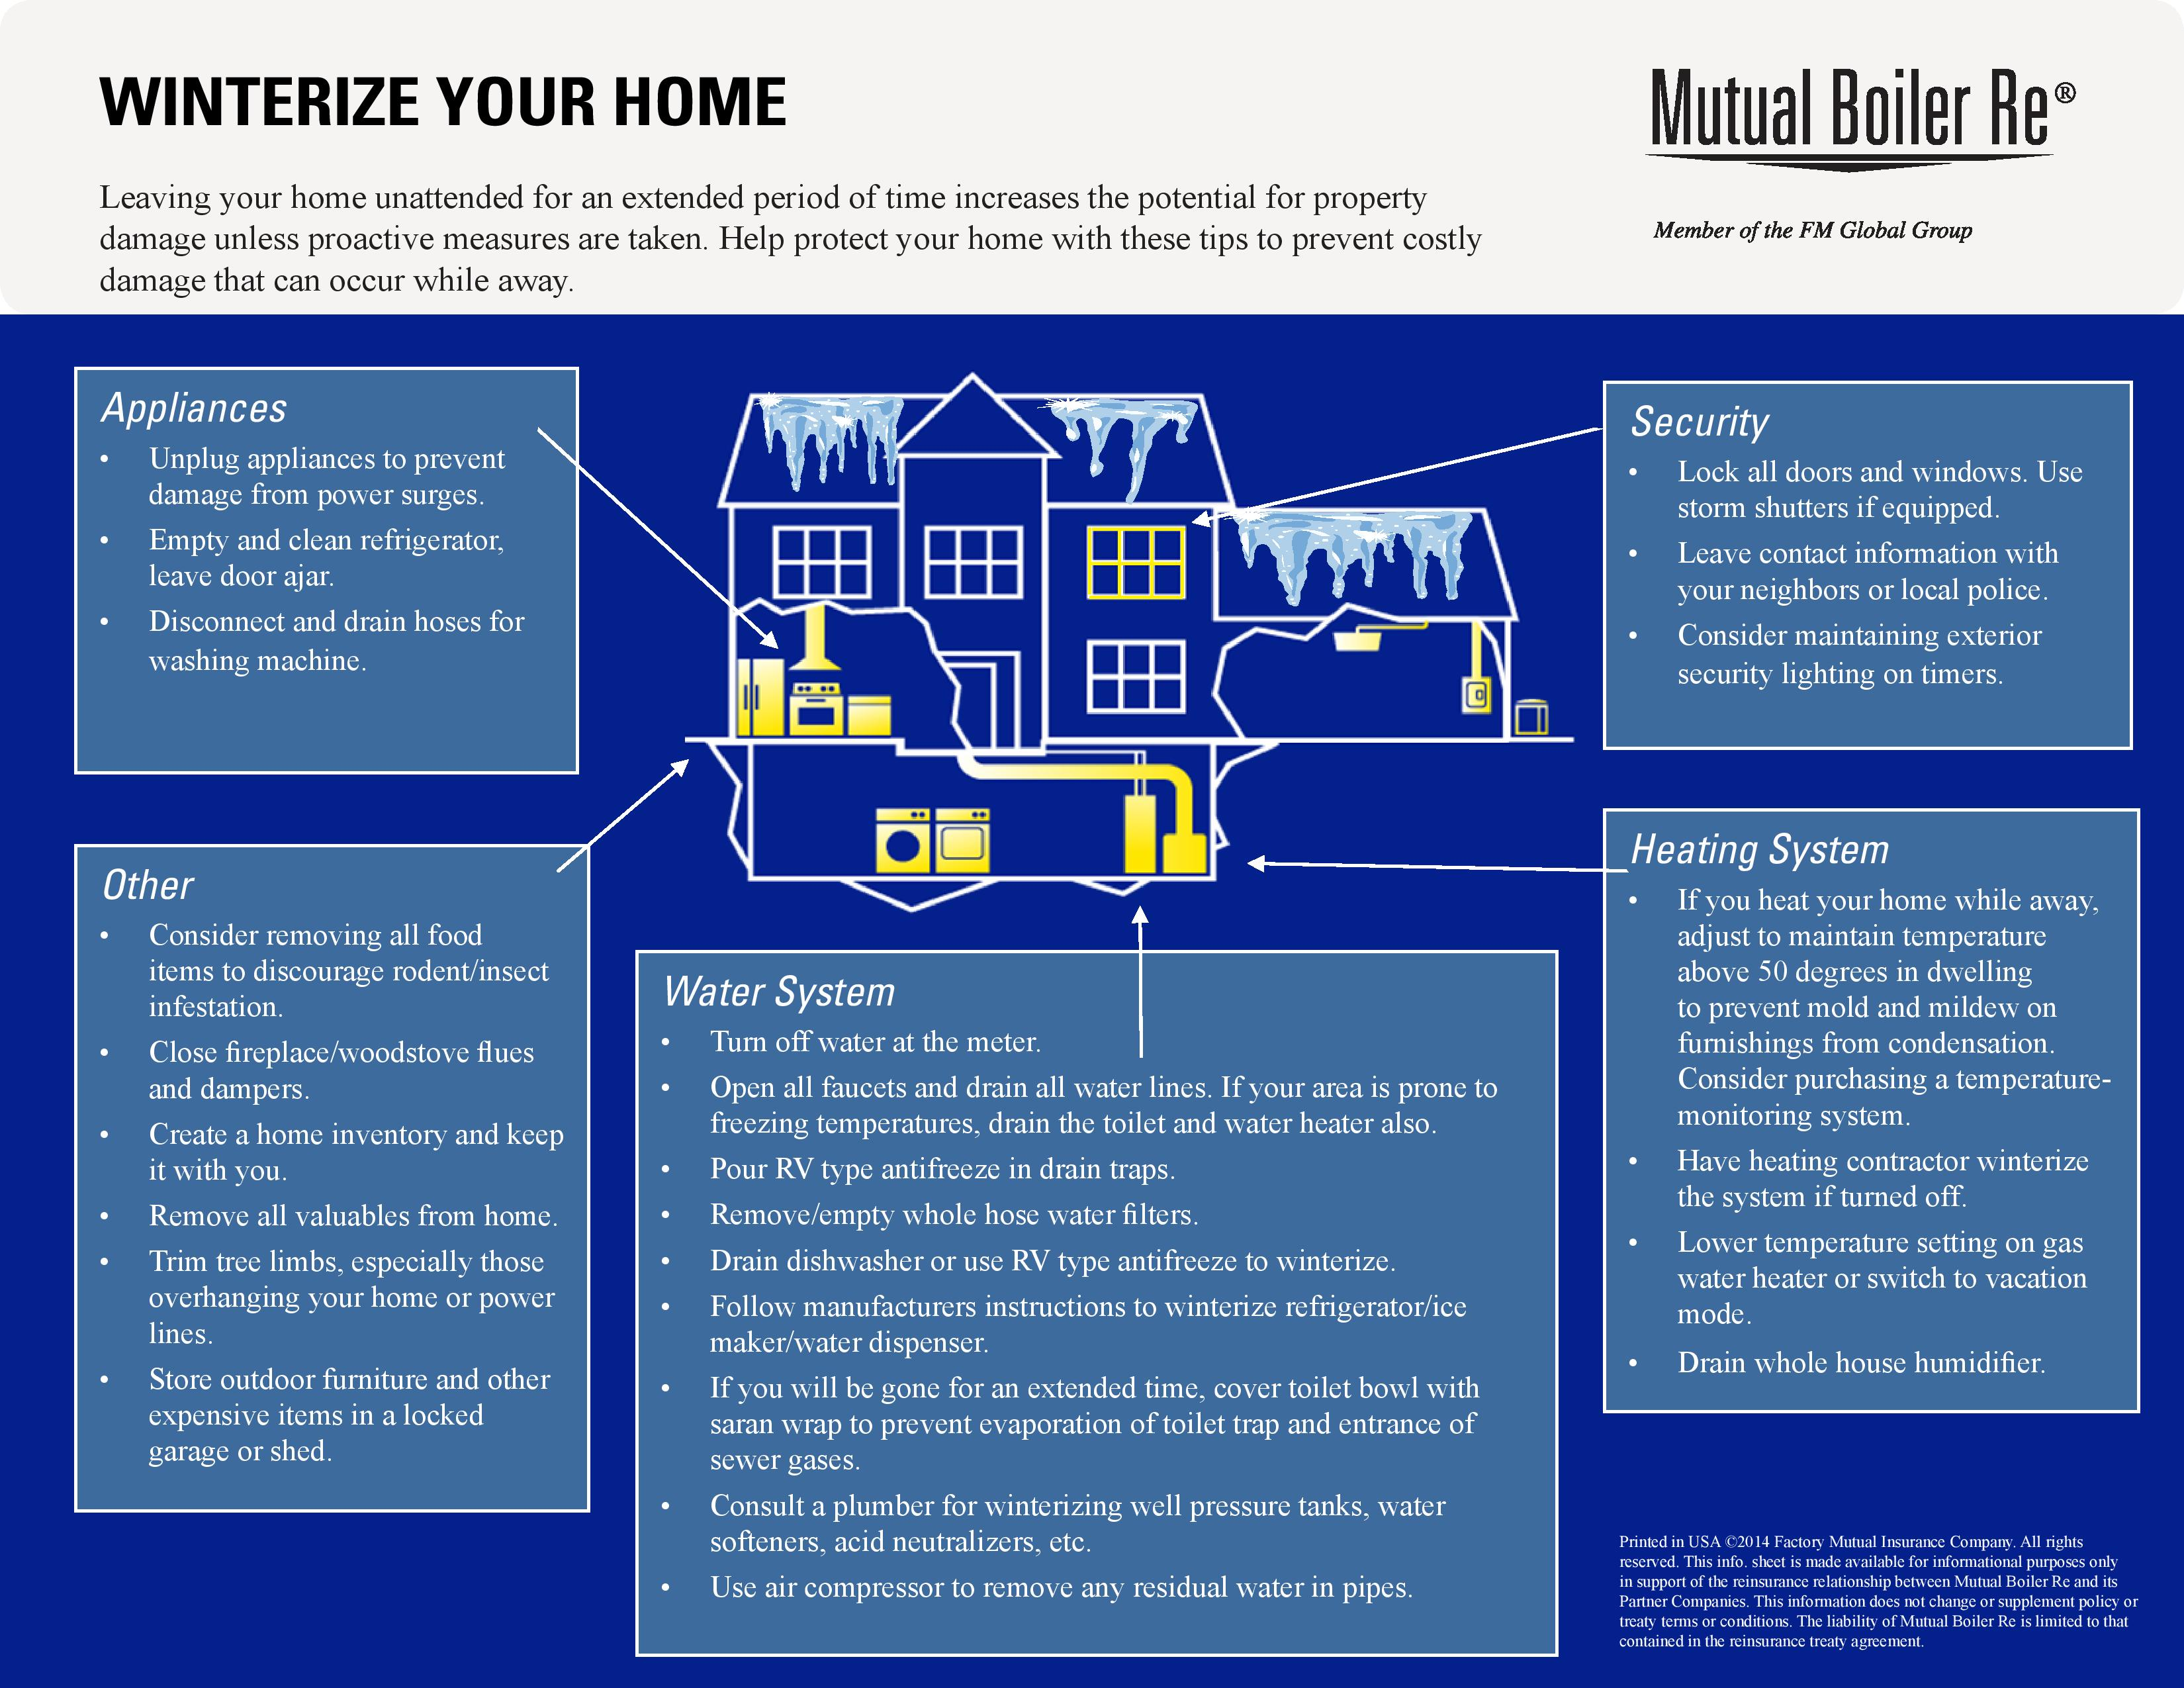 mbre_-_winterize_your_home-page-001